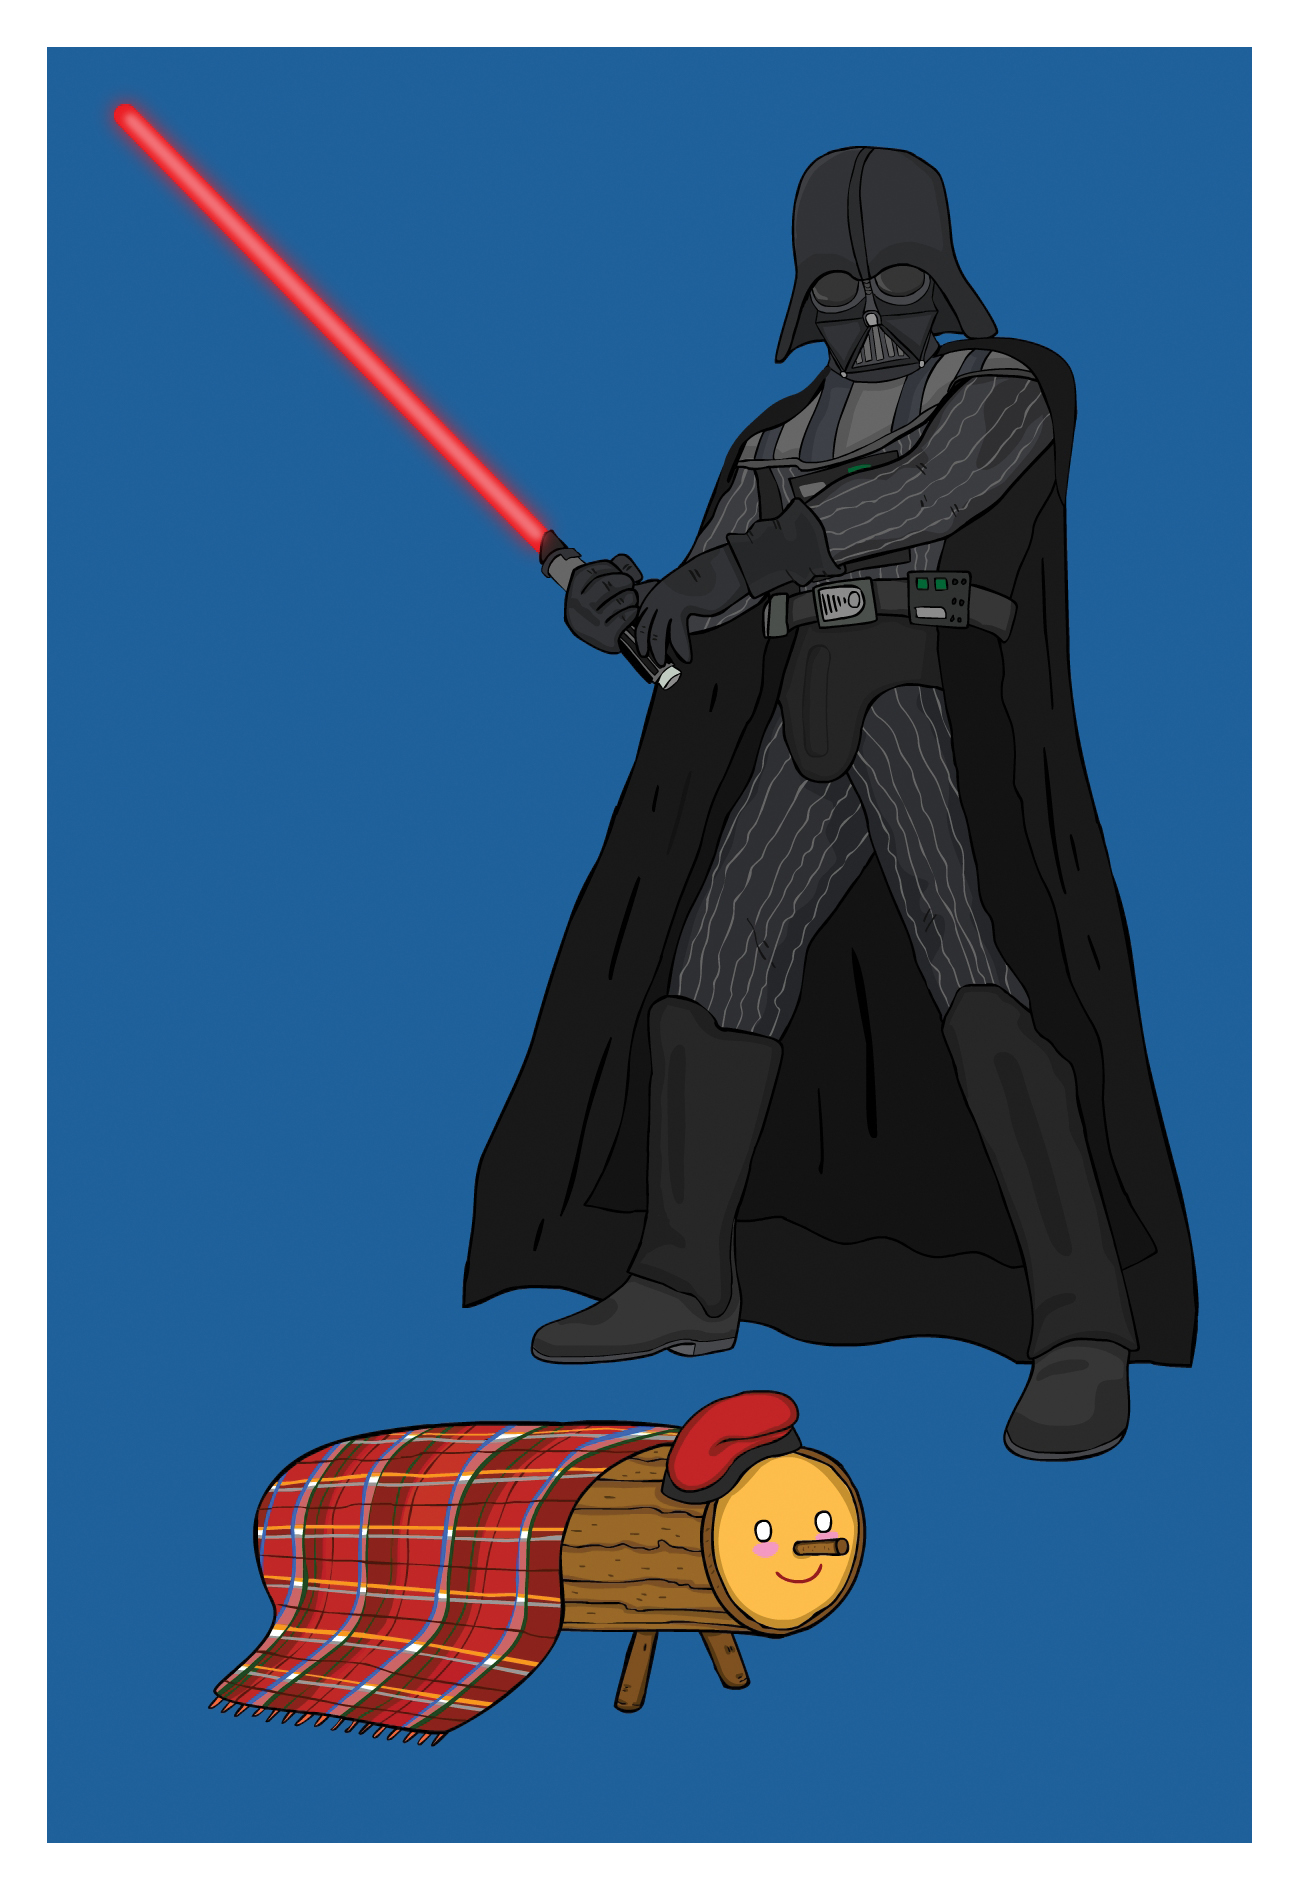 Darth Tió